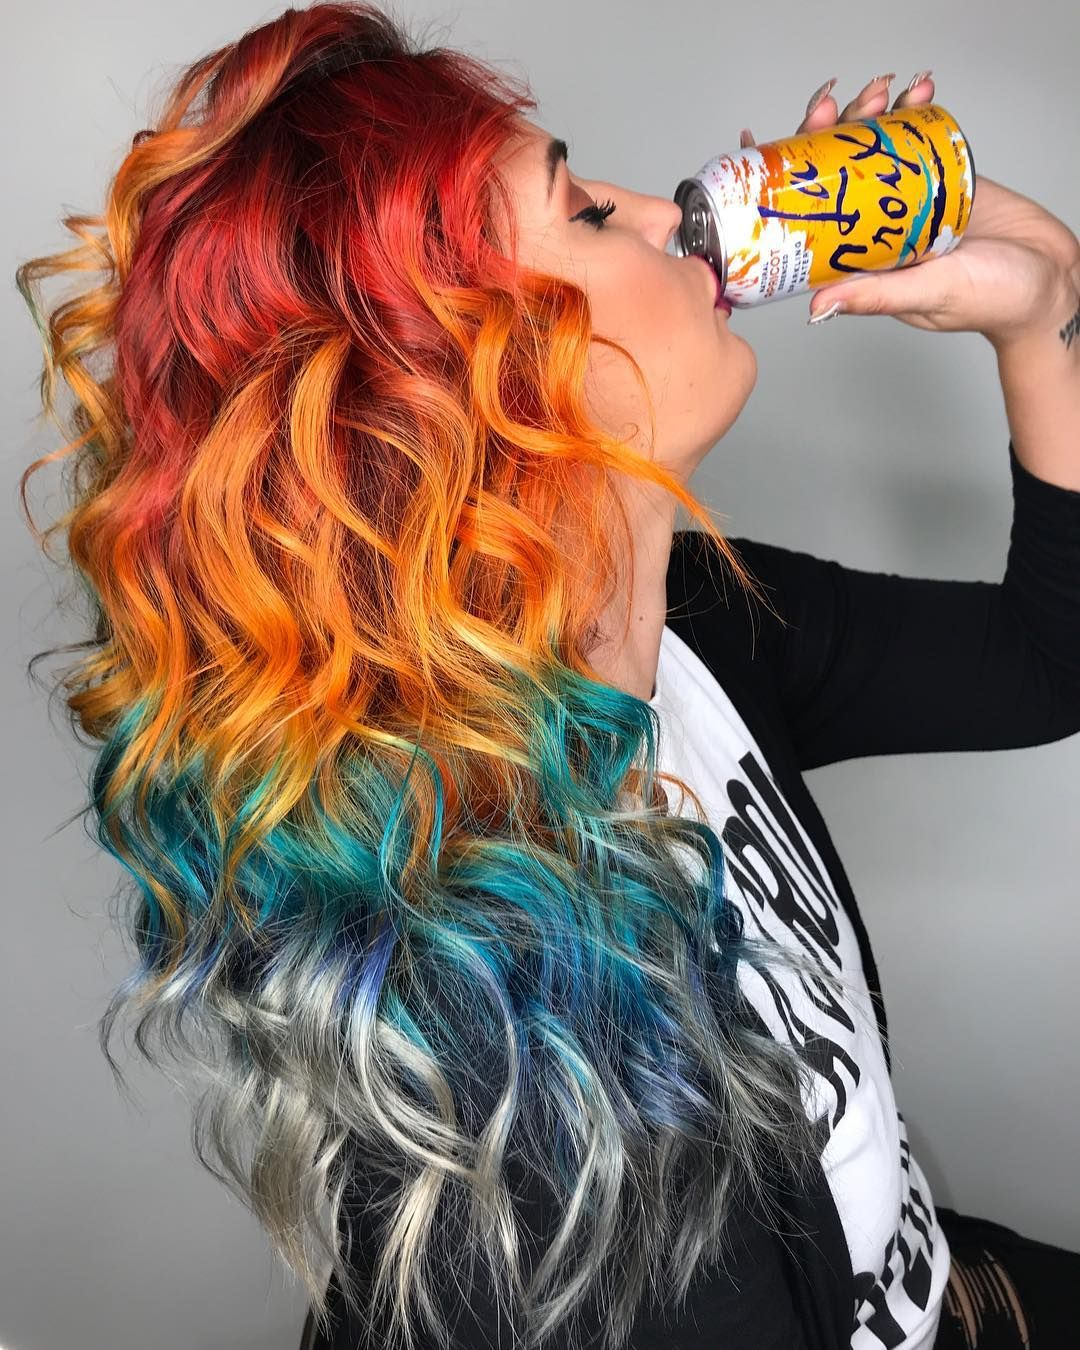 People are dyeing their hair to matching the colors of their